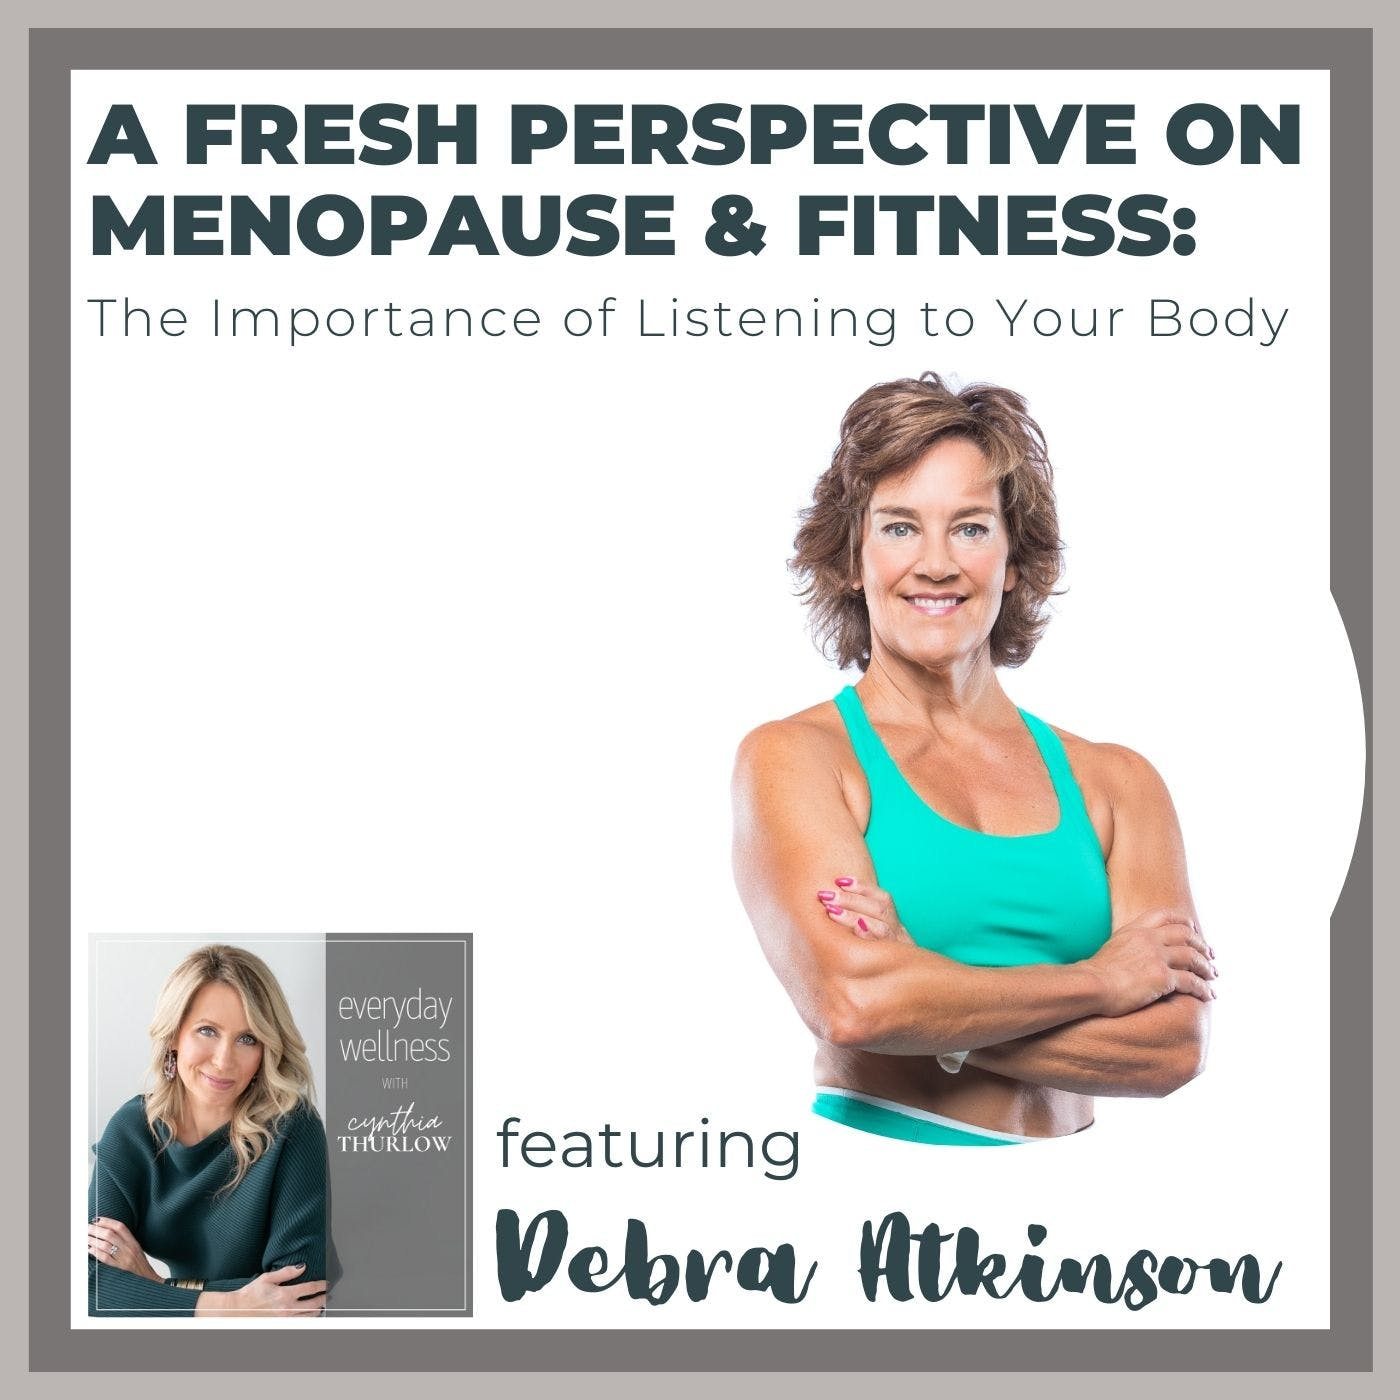 Ep. 165 A Fresh Perspective On Menopause & Fitness: The Importance of Listening to Your Body with Debra Atkinson